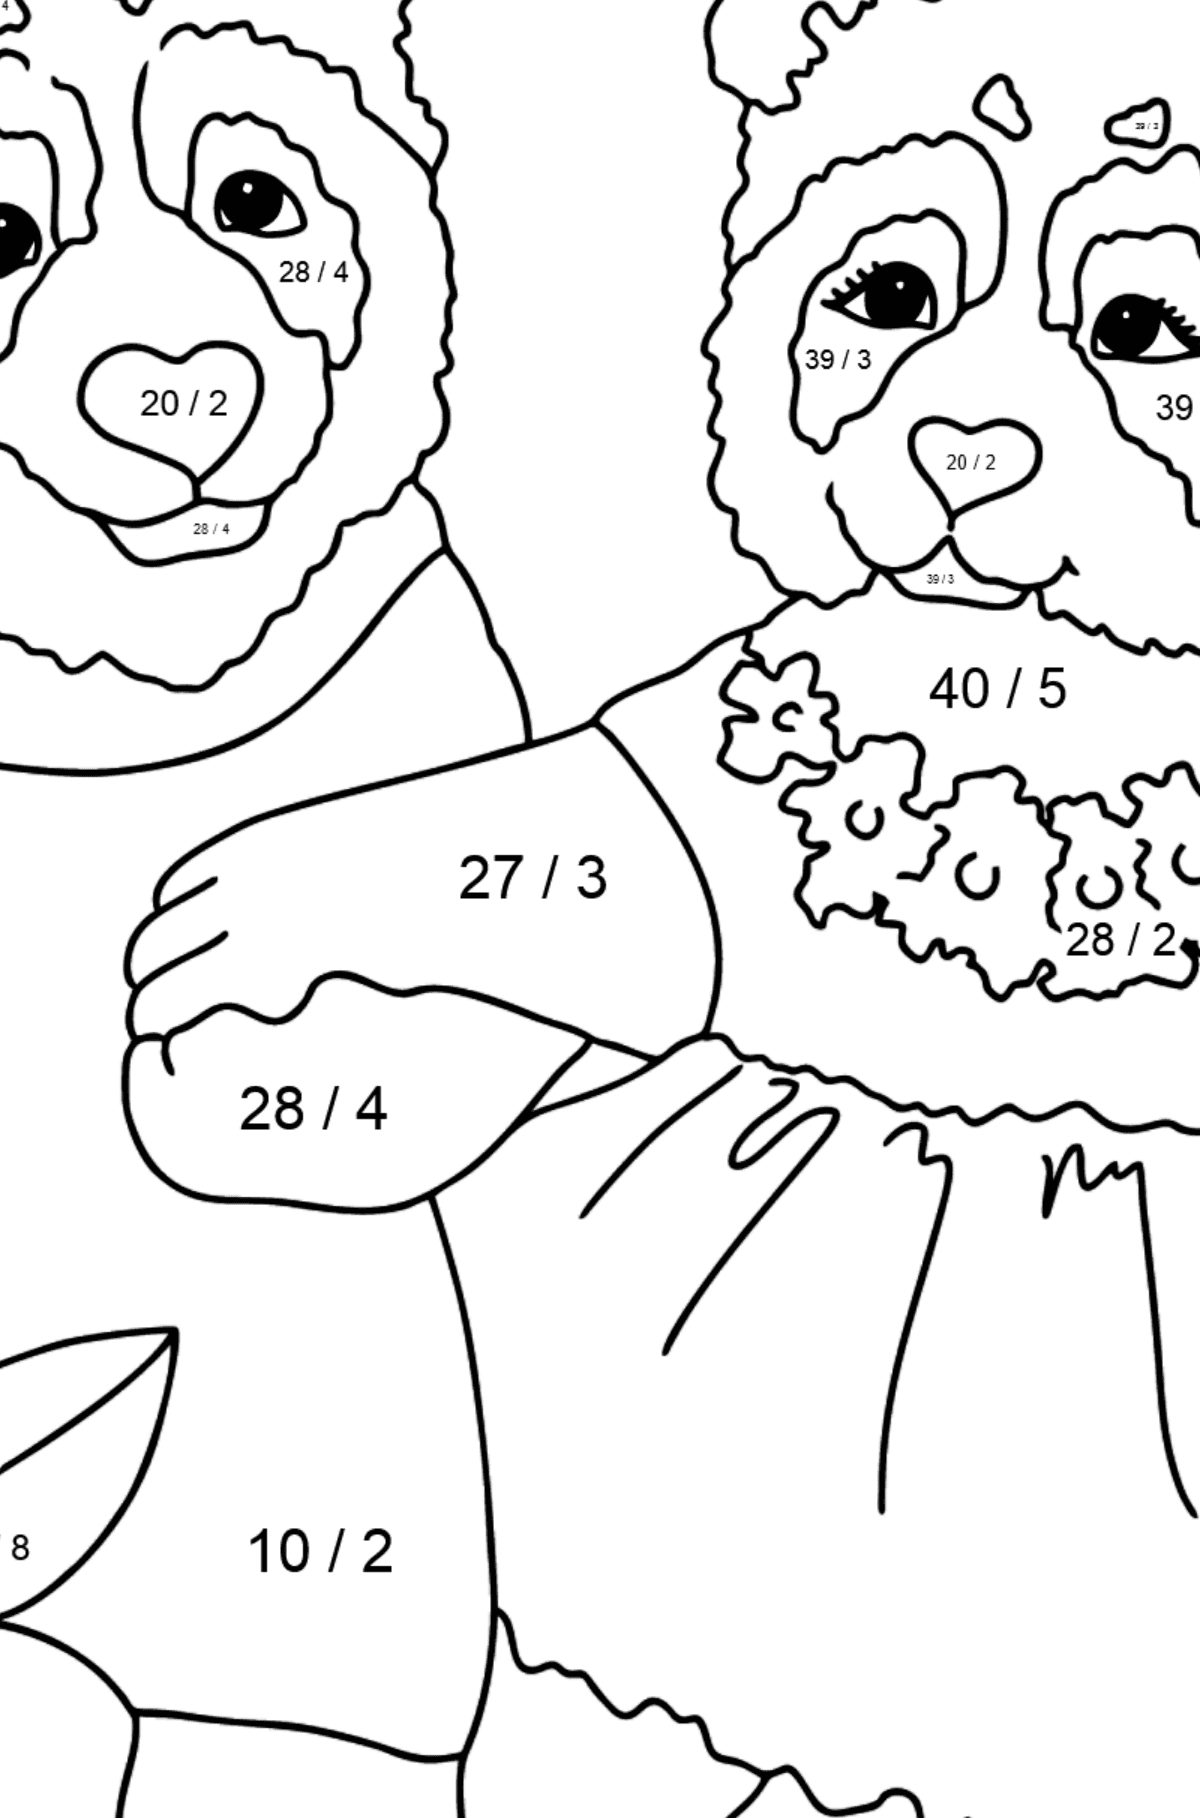 Coloring Page - Pandas are Taking a Walk - Math Coloring - Division for Kids